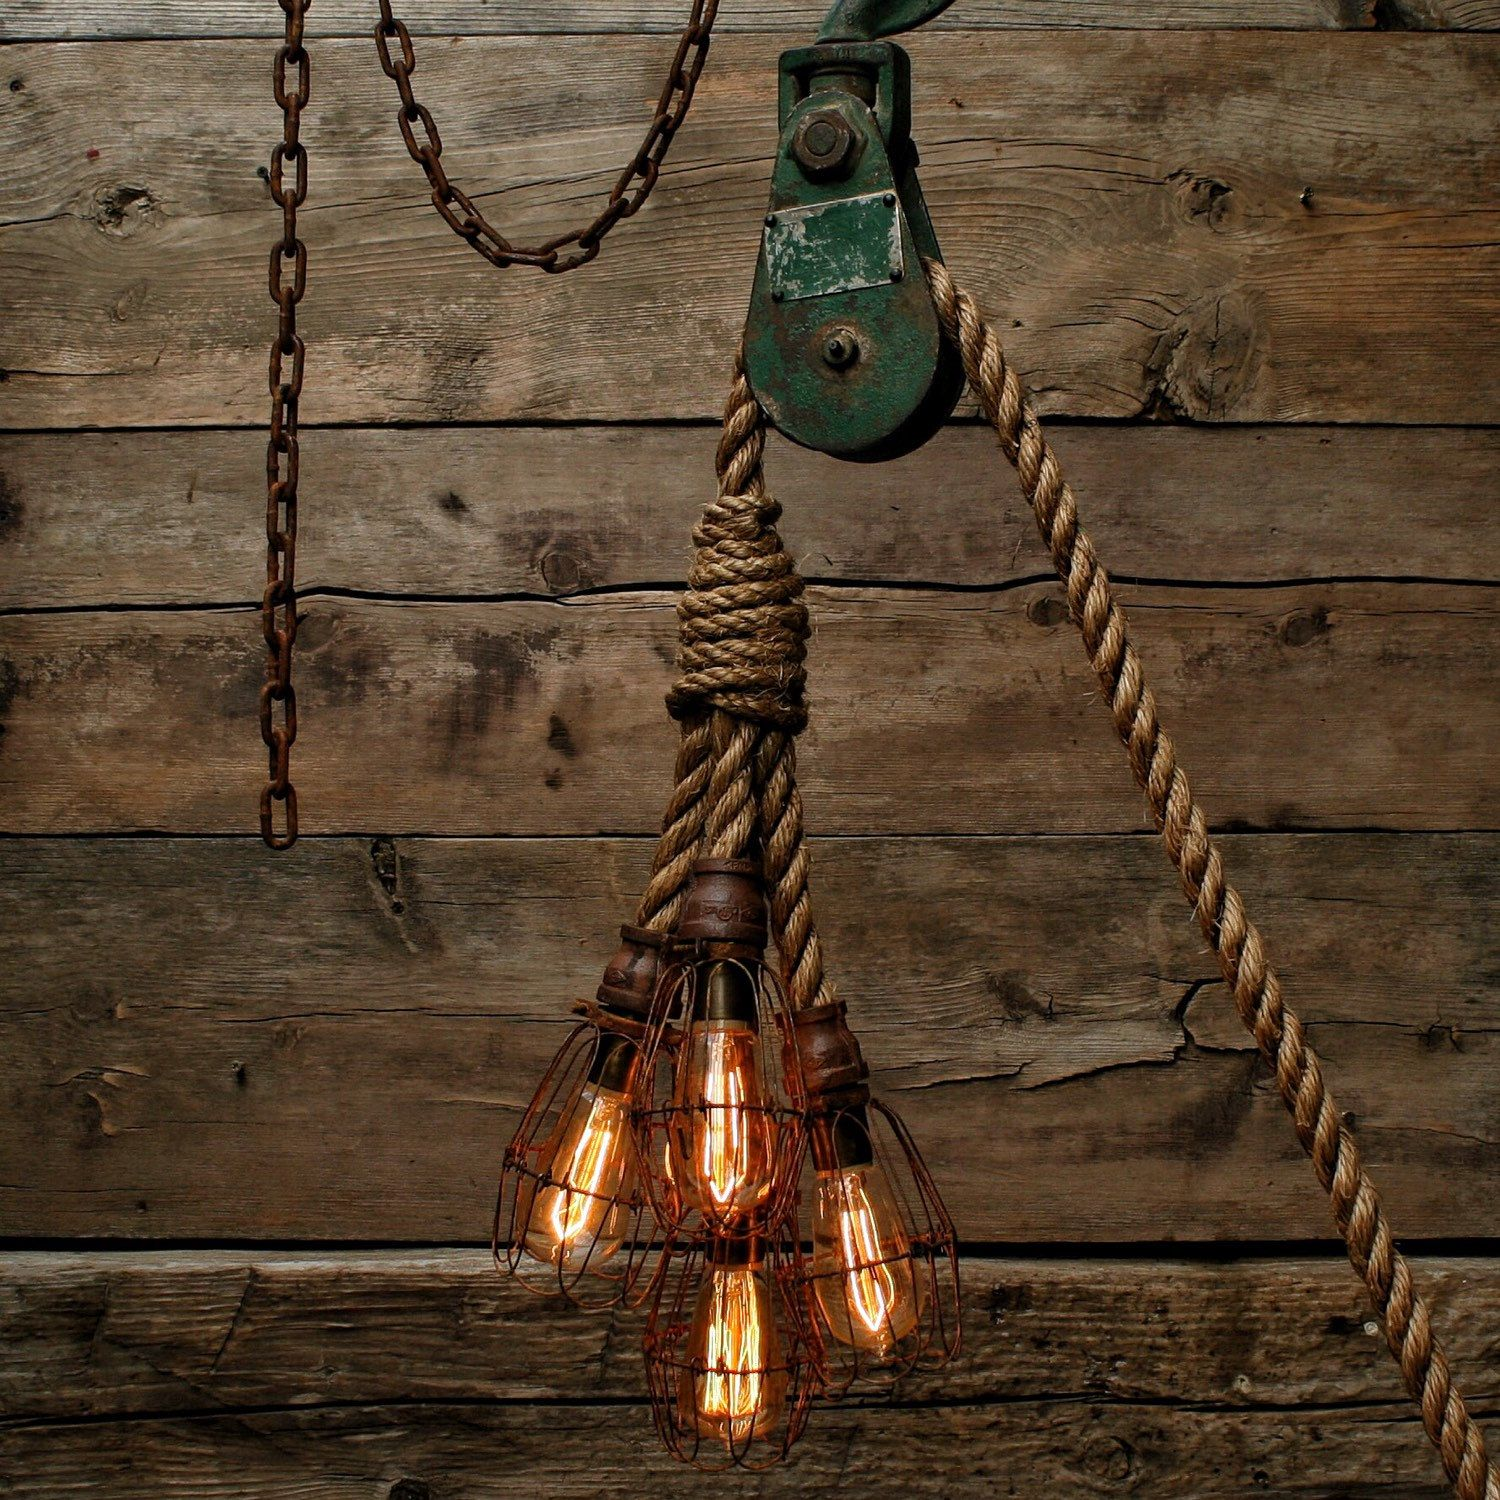 The Hydra Chandelier Industrial Manila Rope Pendant Light Swag